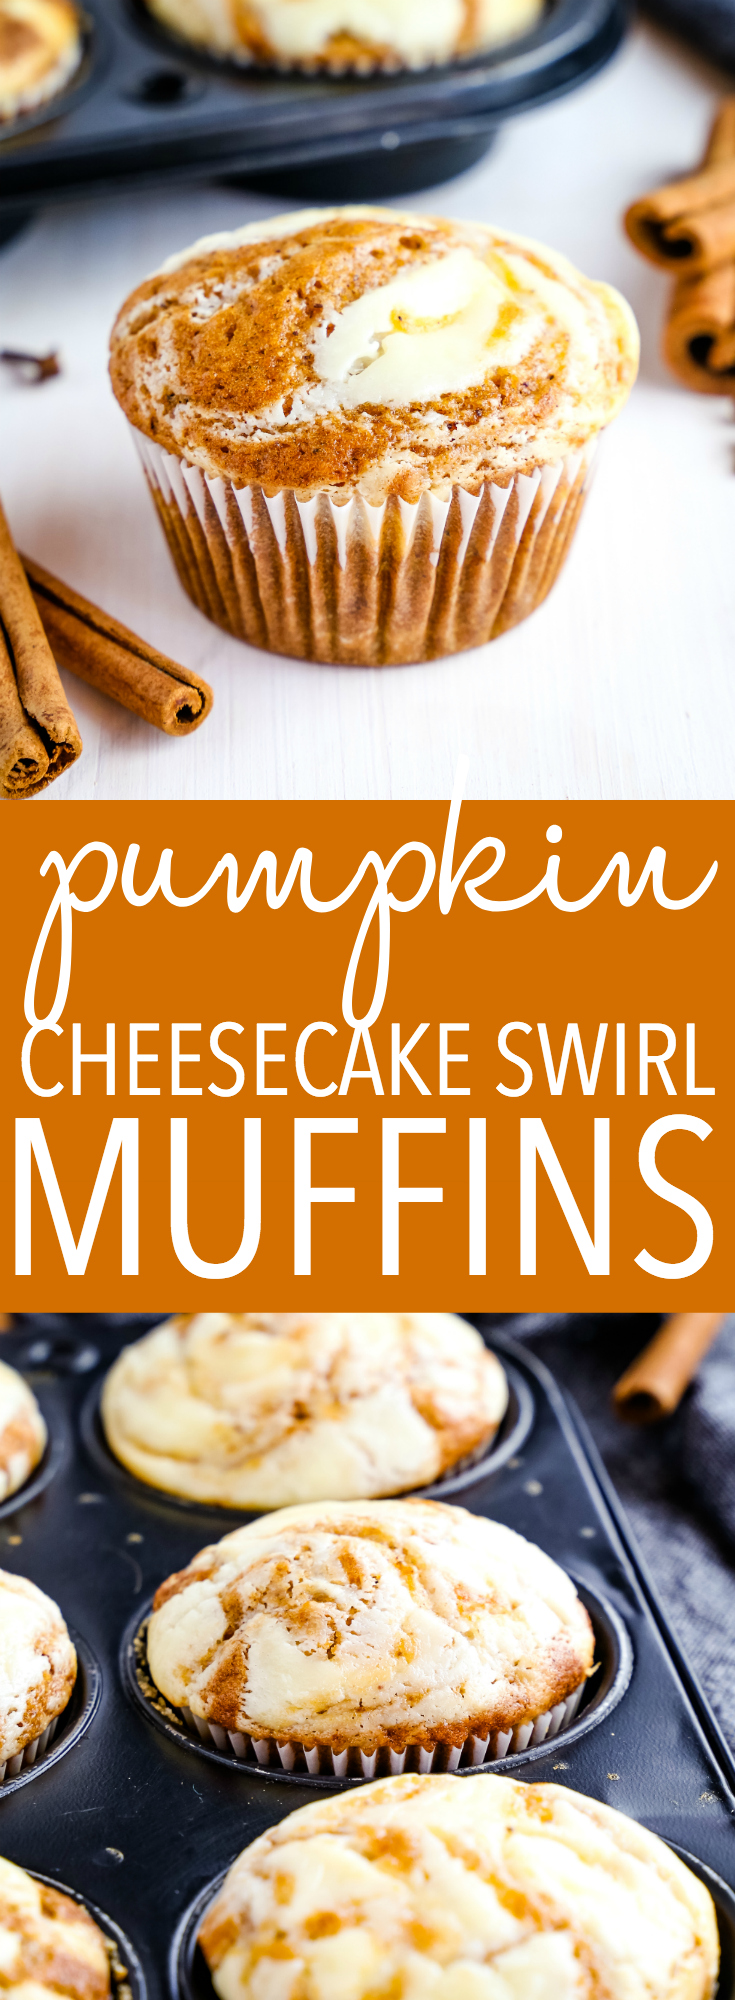 These Pumpkin Cheesecake Swirl Muffins are the perfect fall treat packed with delicious pumpkin spice flavours and a hint of cheesecake! Recipe from thebusybaker.ca! #pumpkin #fall #autumn #muffins #easyrecipe #homemade #pumpkinspice #foodblog via @busybakerblog